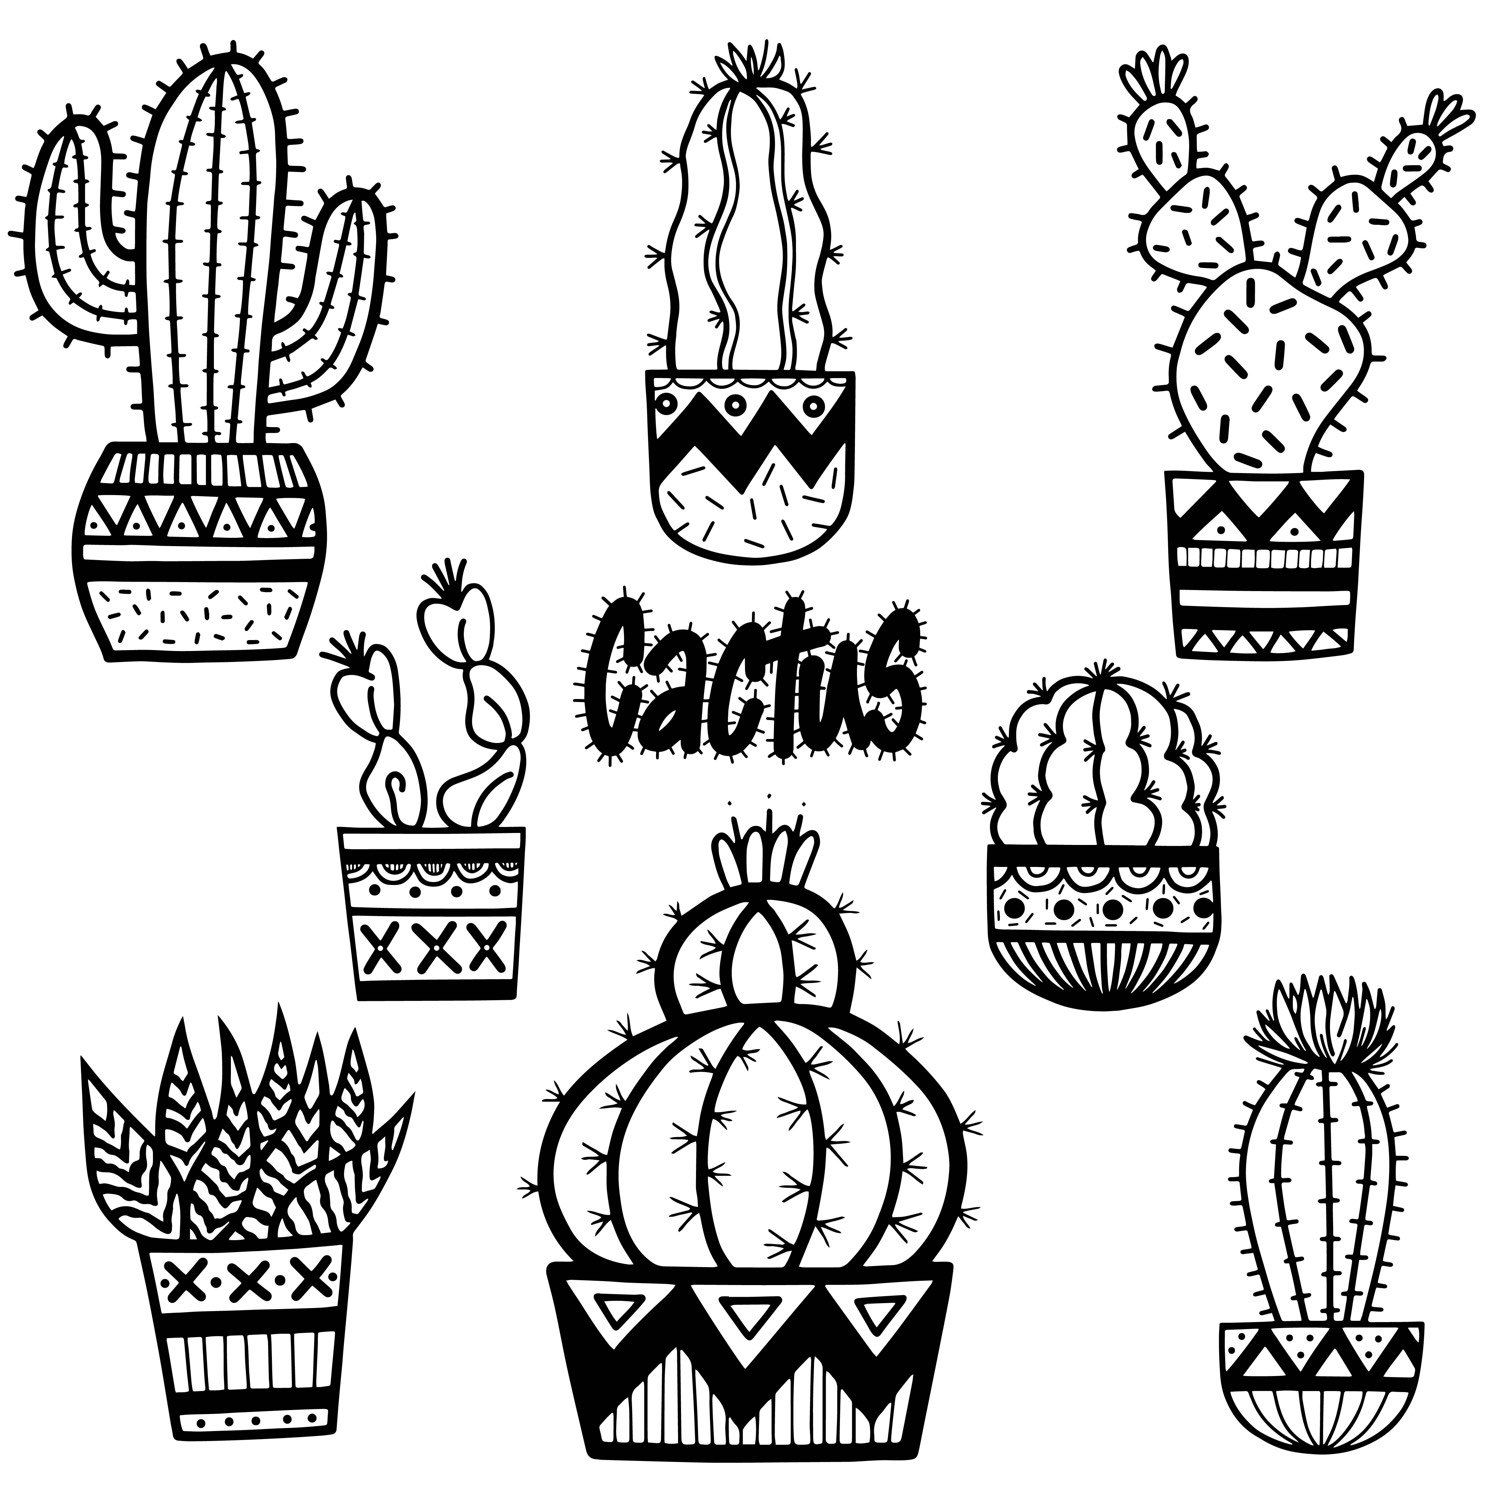 Black and white clipart image of catus flowers banner transparent download Cactus Clip Art, Cactus, Cute cactus,hand drawn, Doodles, Plants ... banner transparent download